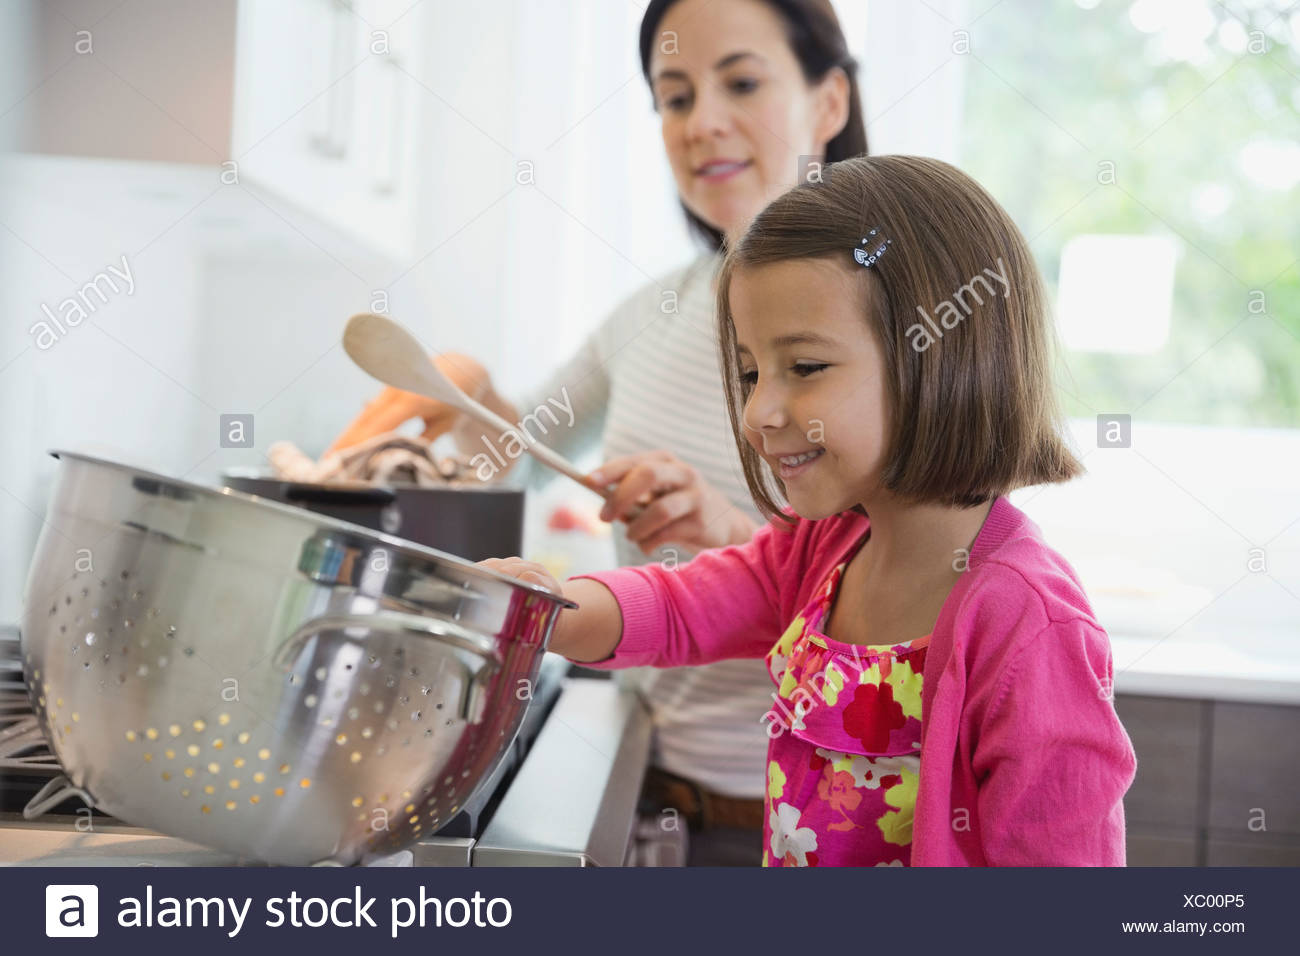 Mother and daughter cooking in kitchen - Stock Image